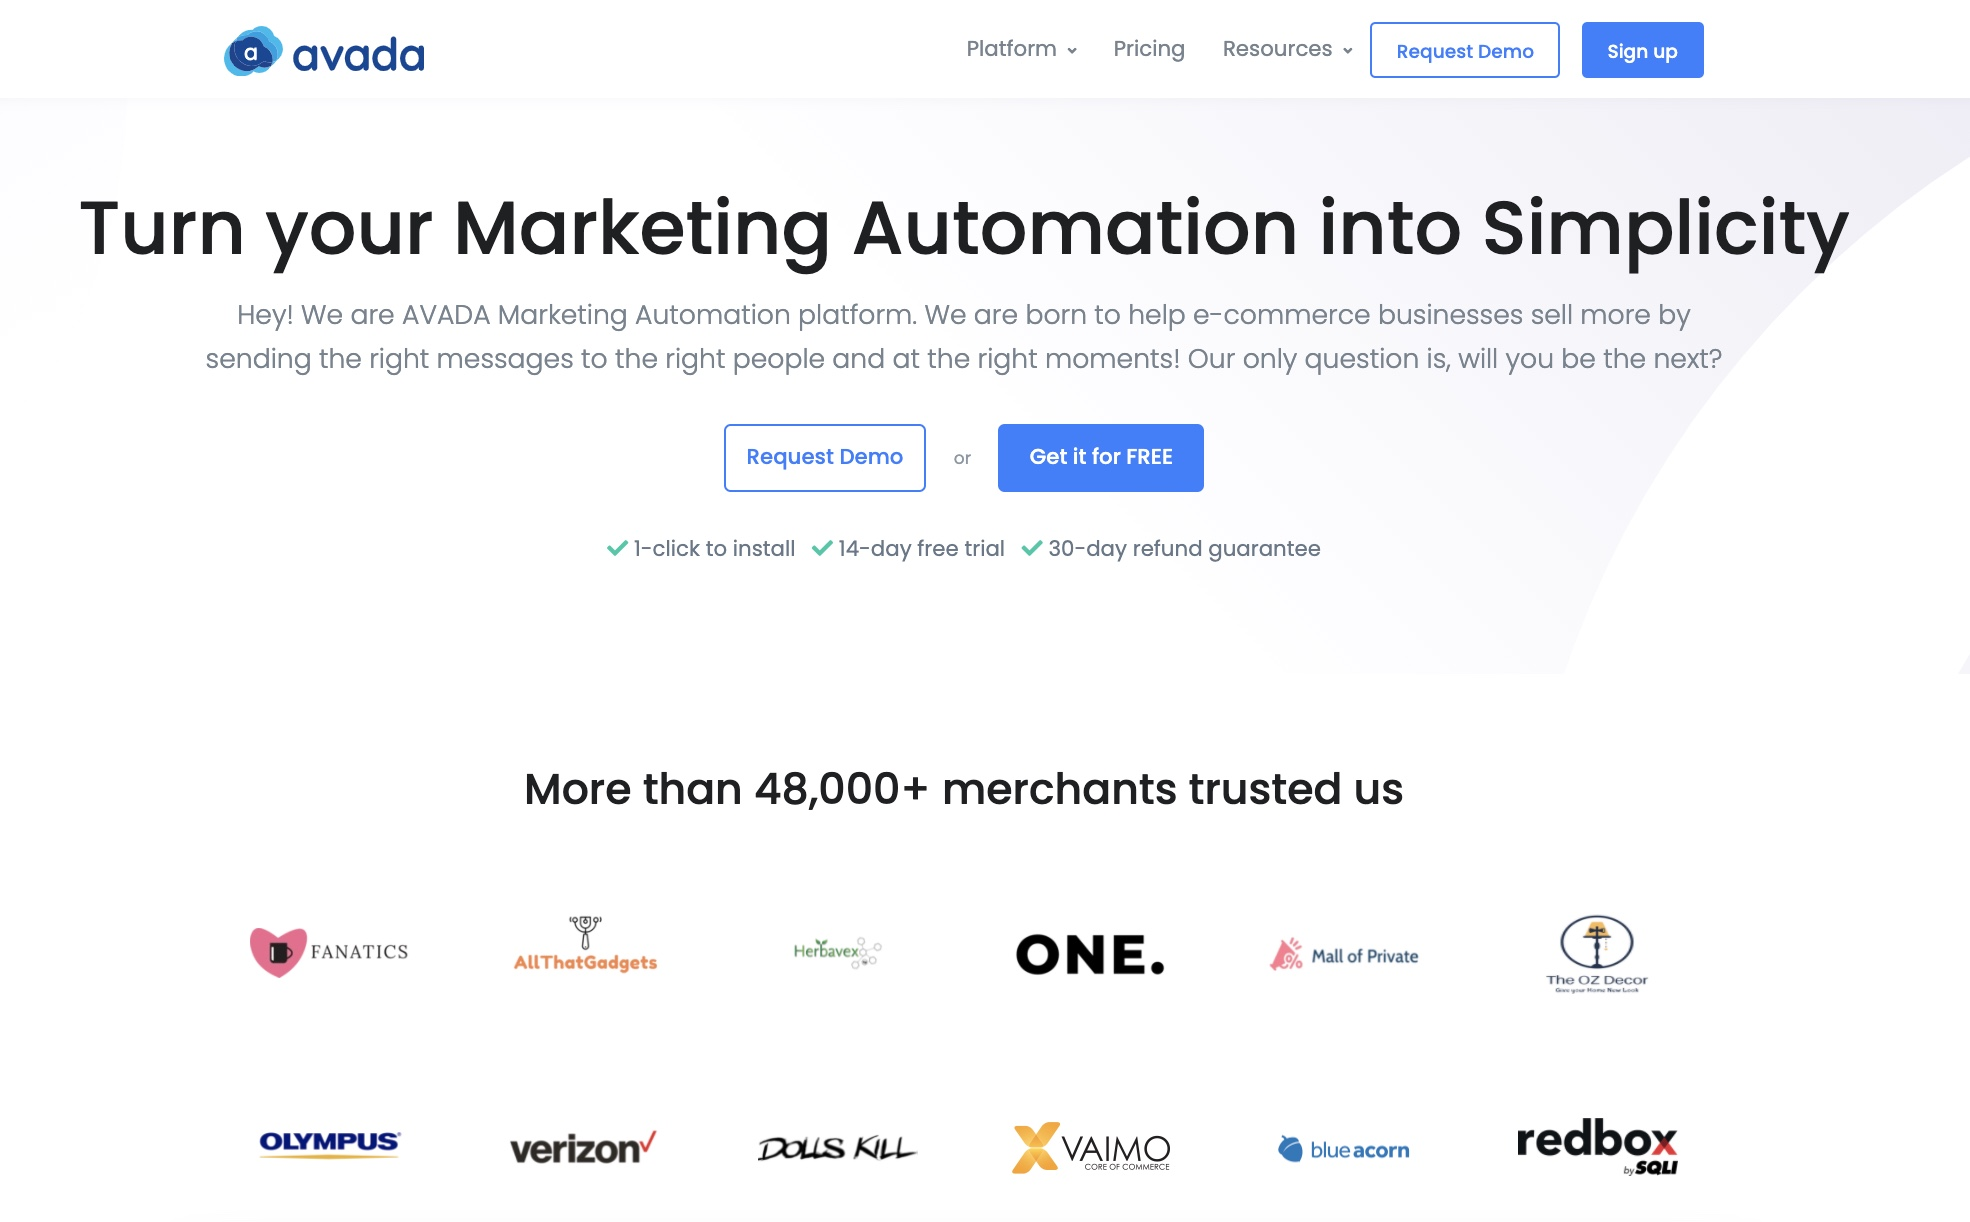 Use AVAD Marketing Automation to reduce cart abandonment rate